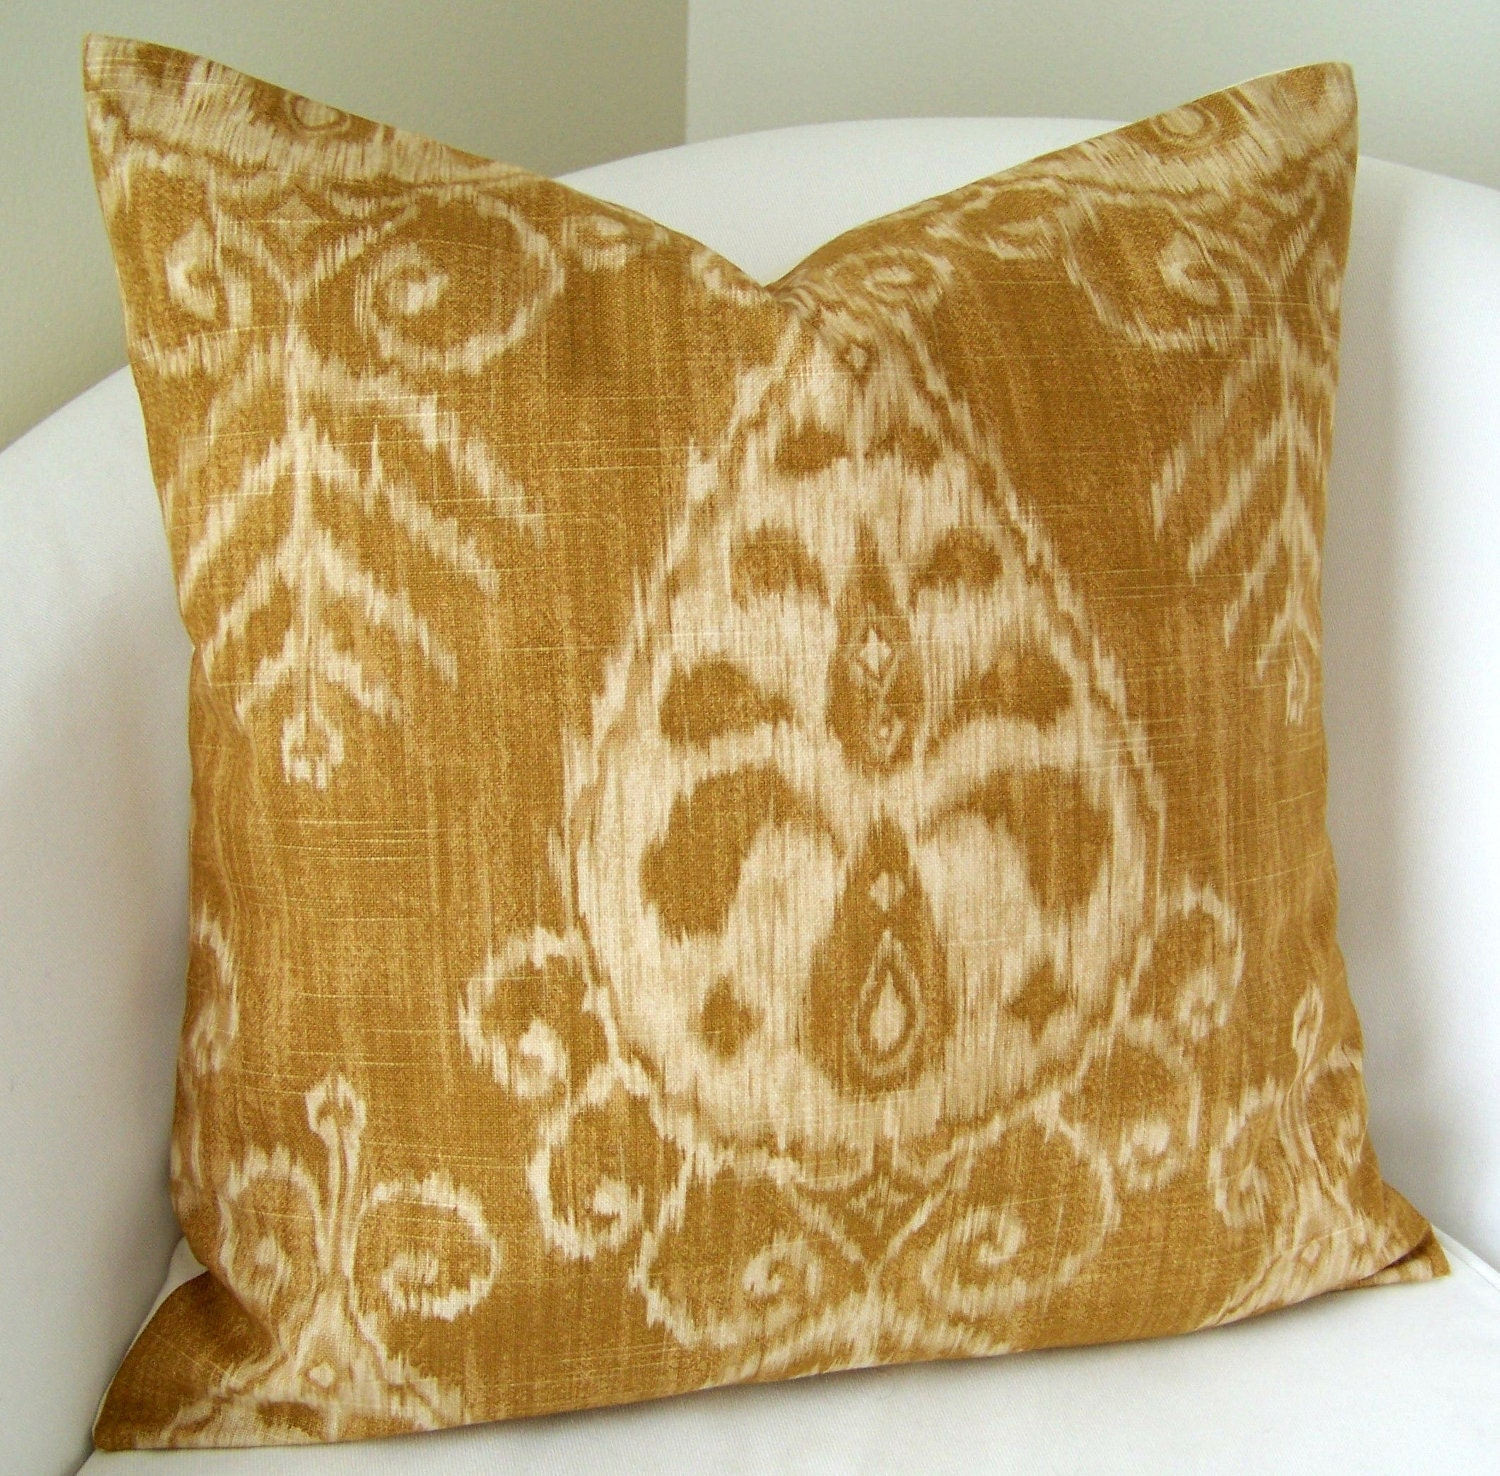 Throw Pillows Gif : Decorative Throw Pillow Cover Gold Ikat Pillow 20x20 Inch